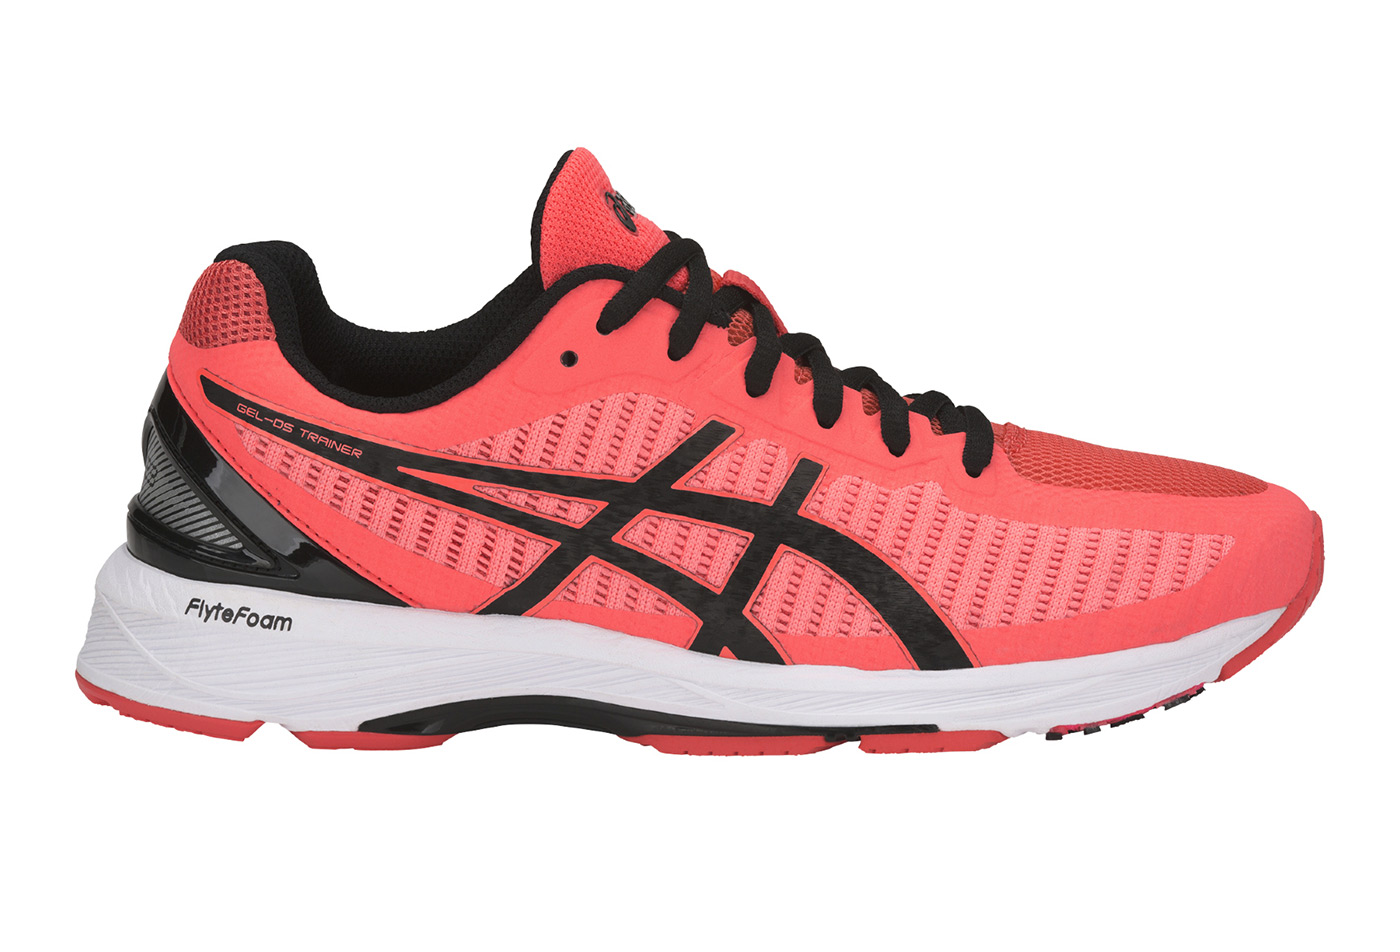 new style dbbd9 b03a5 ASICS GEL-DS Trainer 23 Women's Shoes Pink